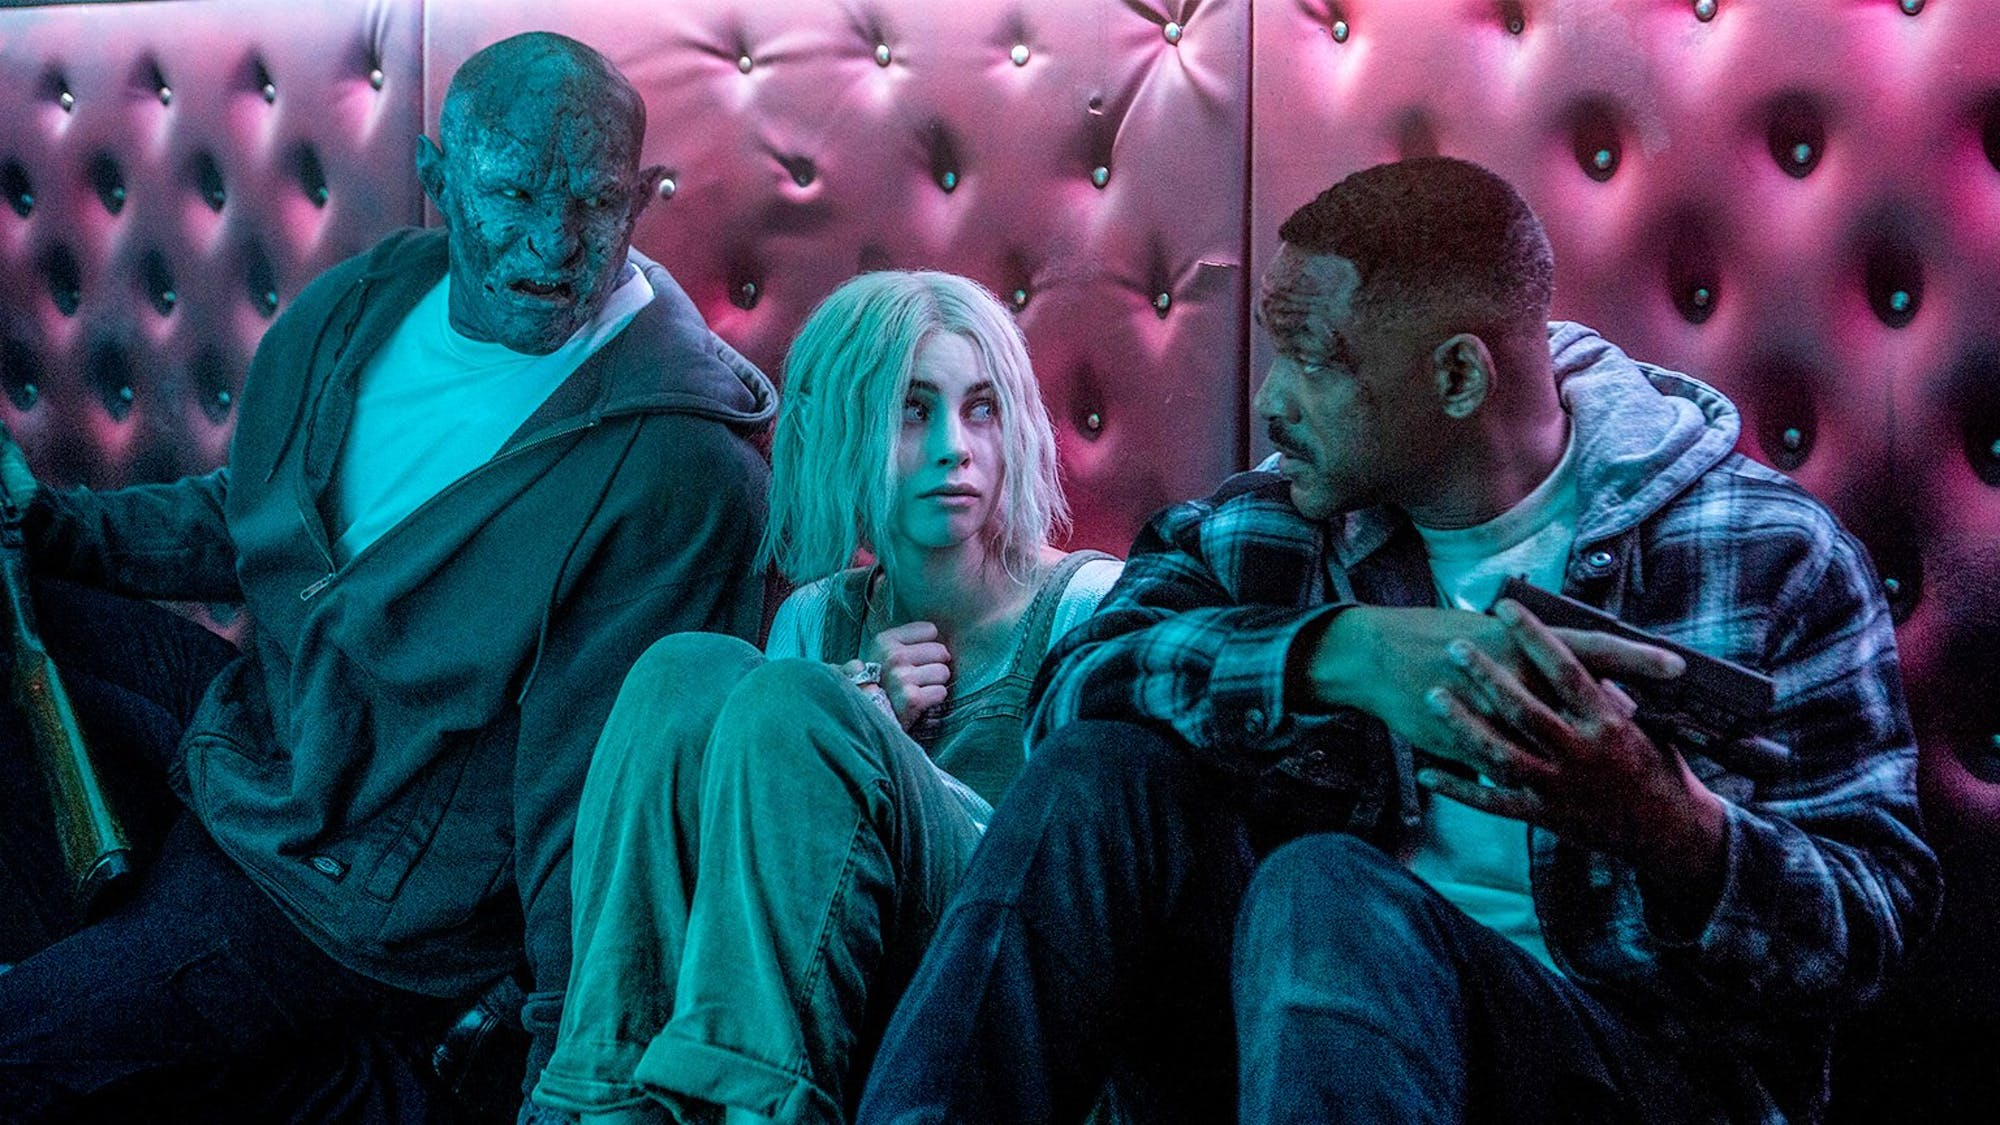 Bright' Sequel: 8 Theories for the Next Movie | Inverse